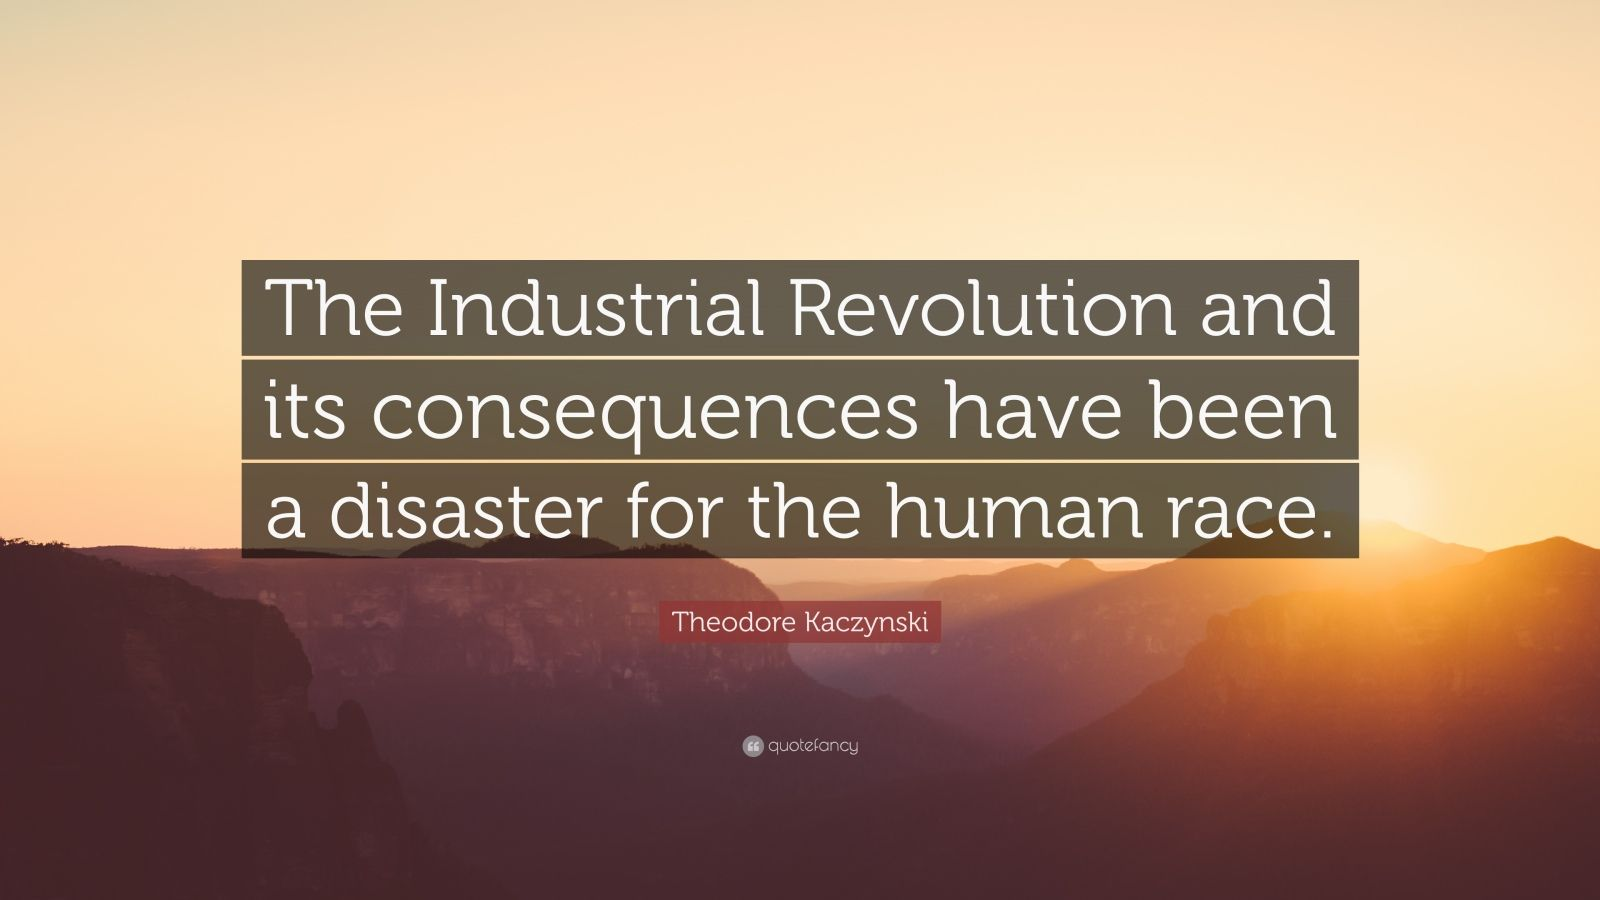 Beautiful Wallpapers With Inspirational Quotes Theodore Kaczynski Quote The Industrial Revolution And